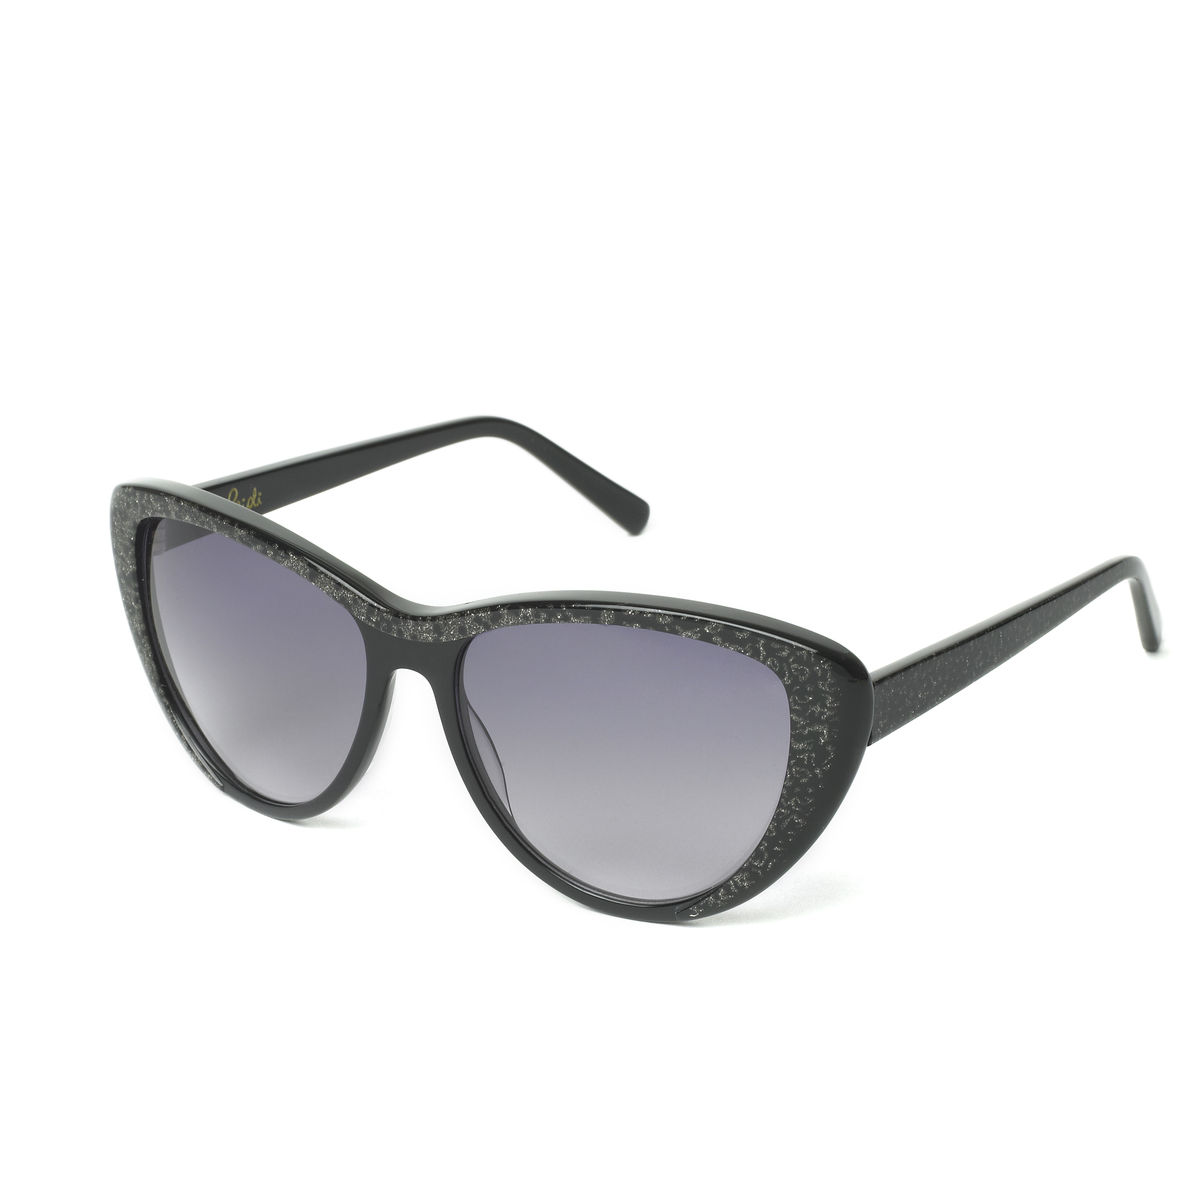 Black Sparkle Cateye Frame Sunglasses (Limited Edition) - Heidi London